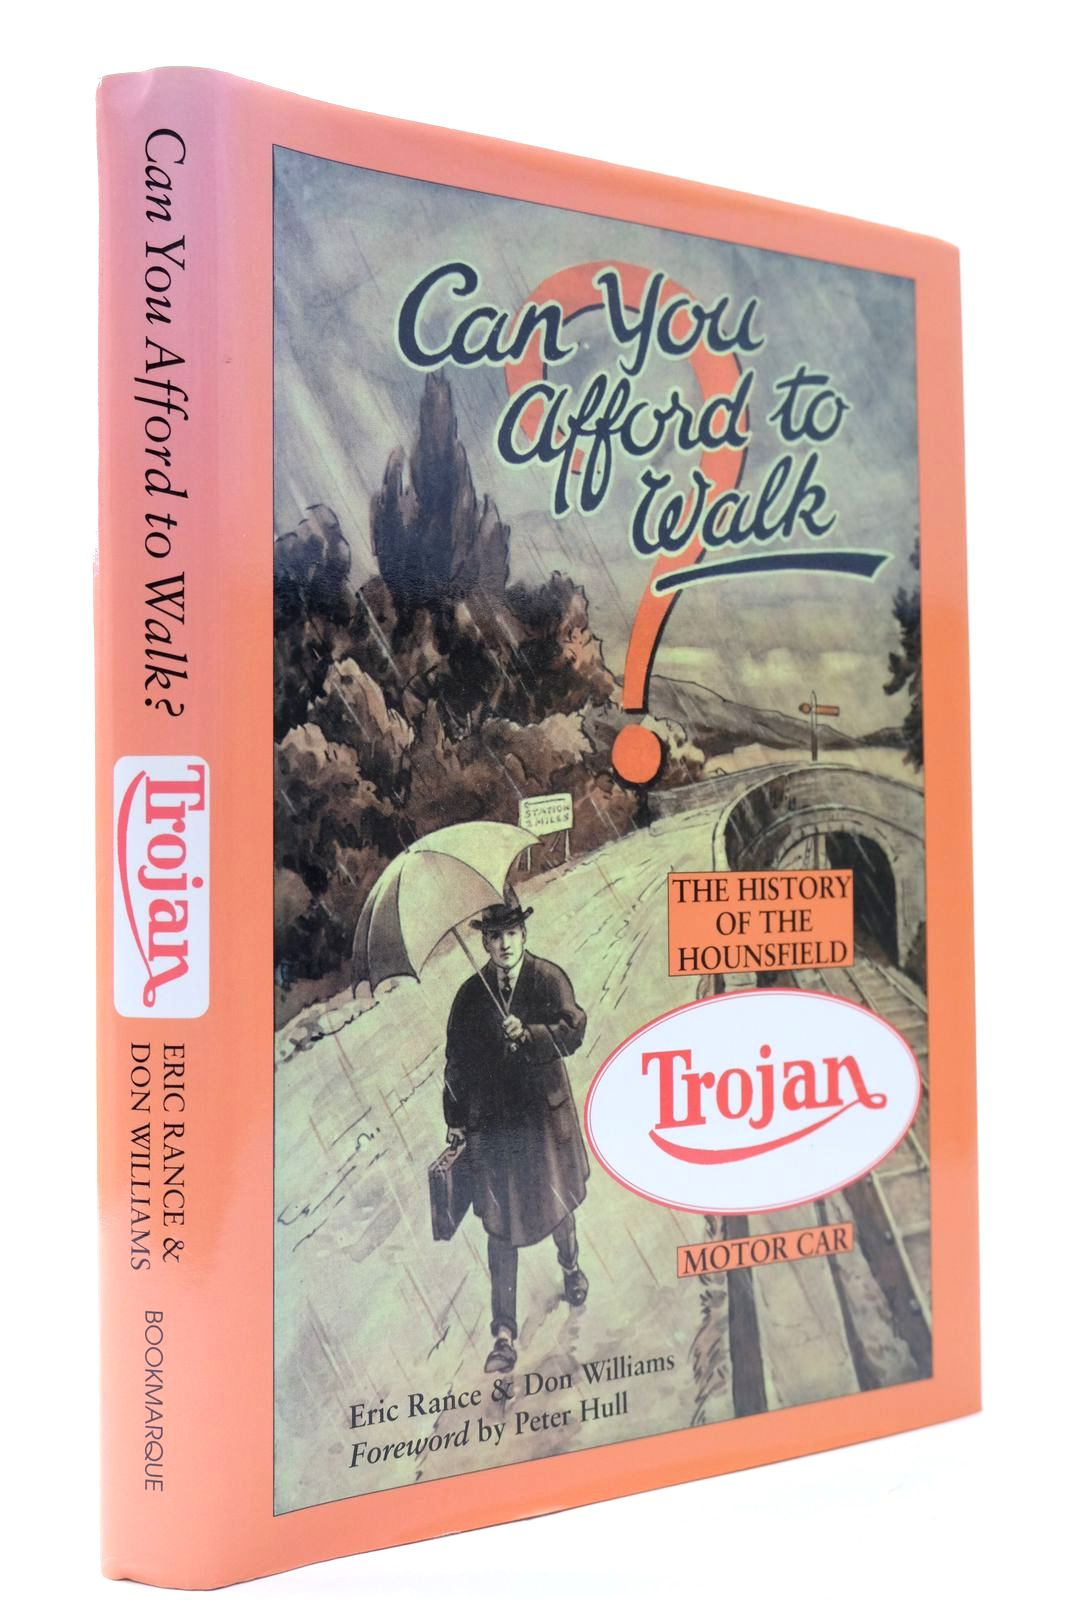 Photo of CAN YOU AFFORD TO WALK? THE HISTORY OF THE HOUNSFIELD TROJAN MOTOR CAR written by Rance, Eric